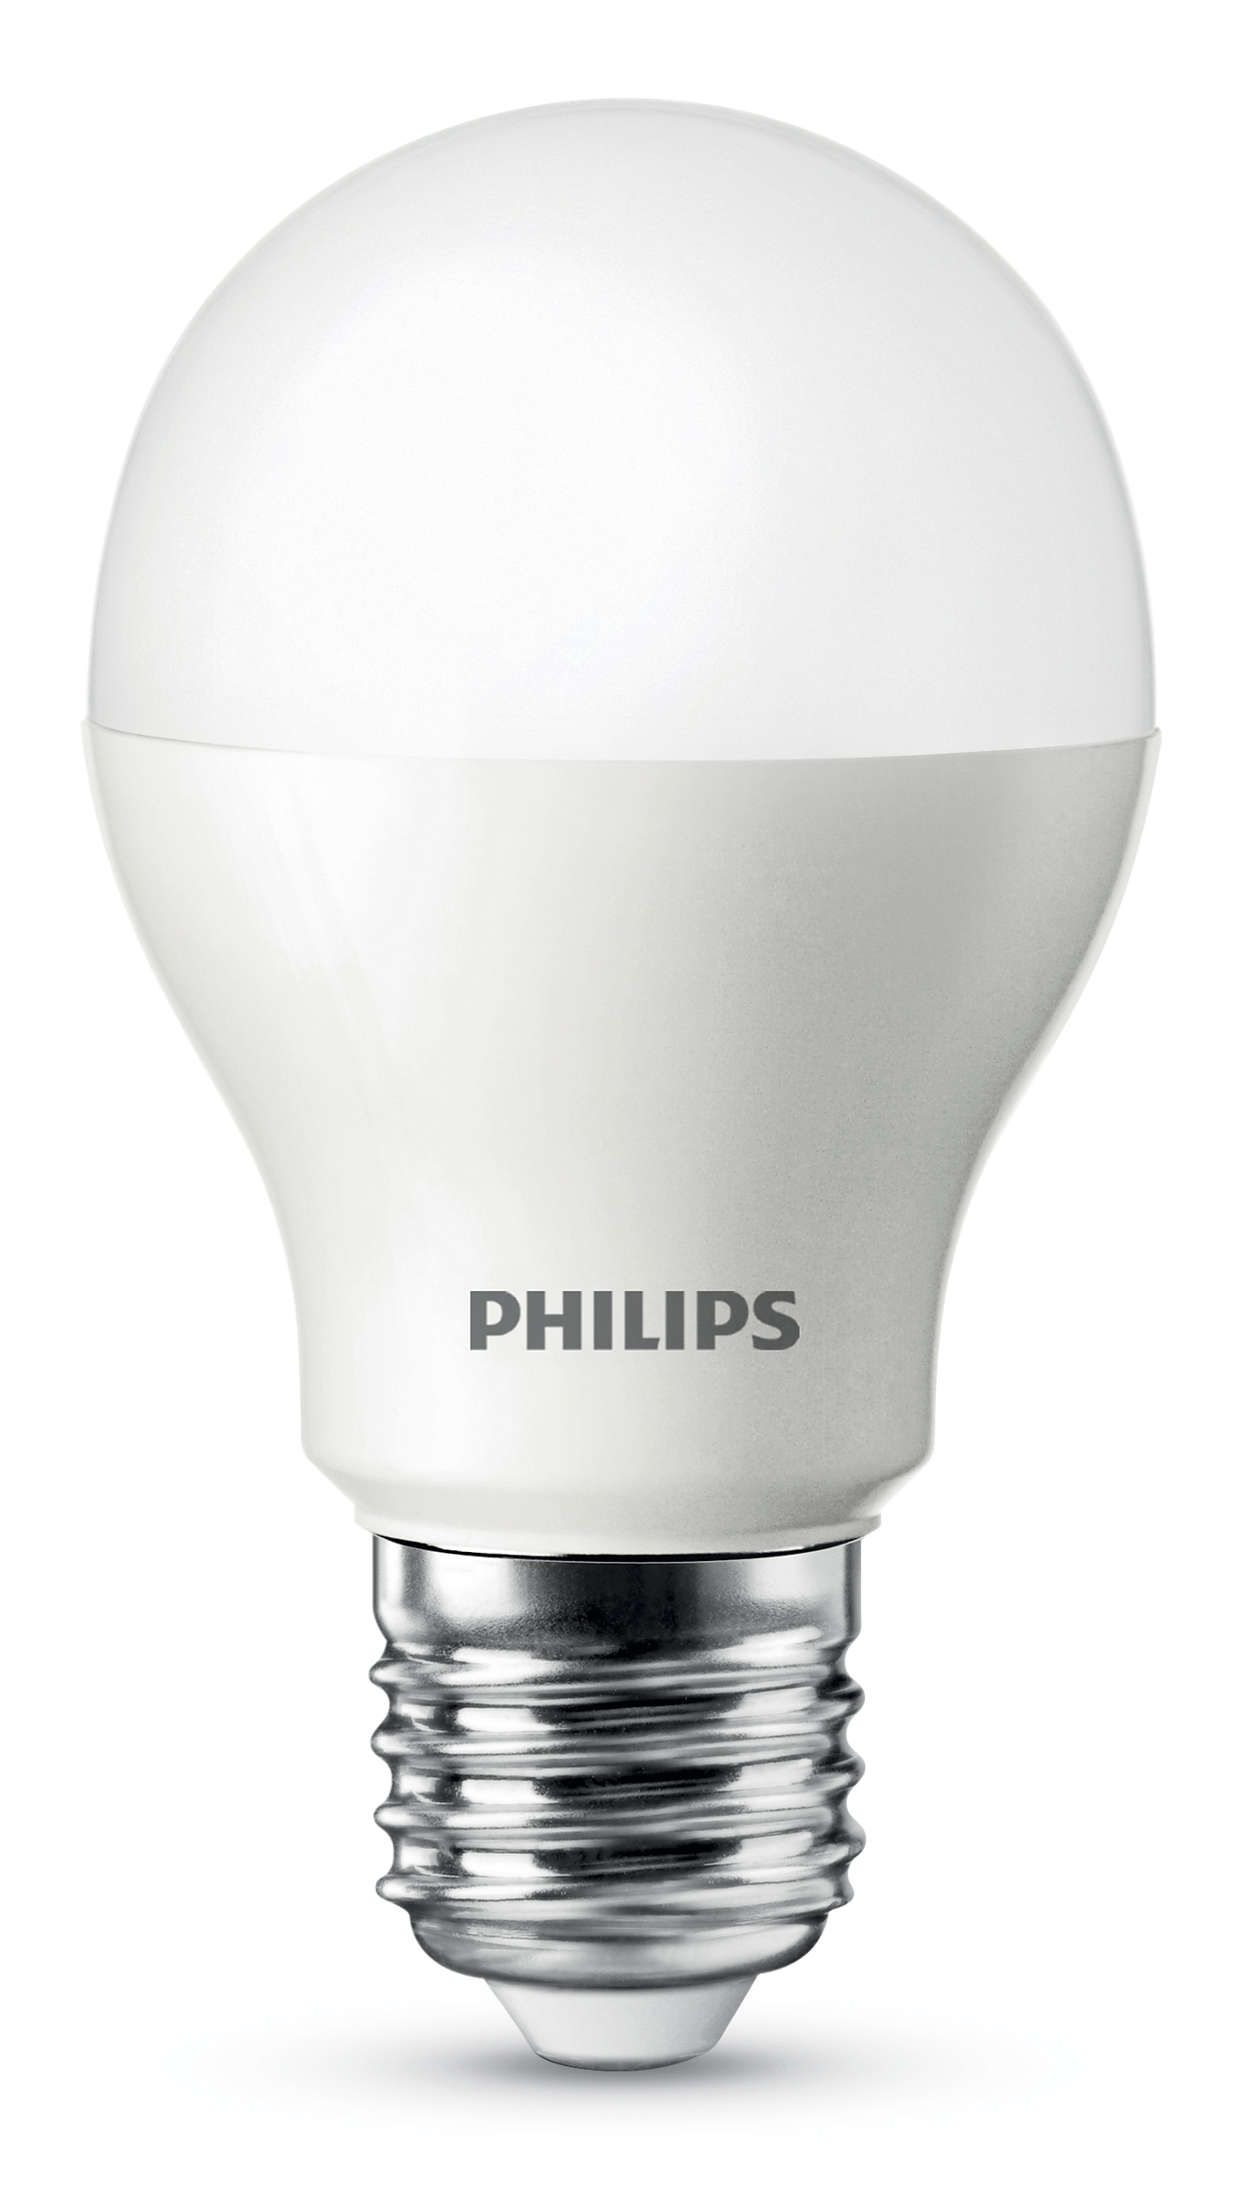 Gut gemocht LED Lampe 8718291193029 | Philips DM15